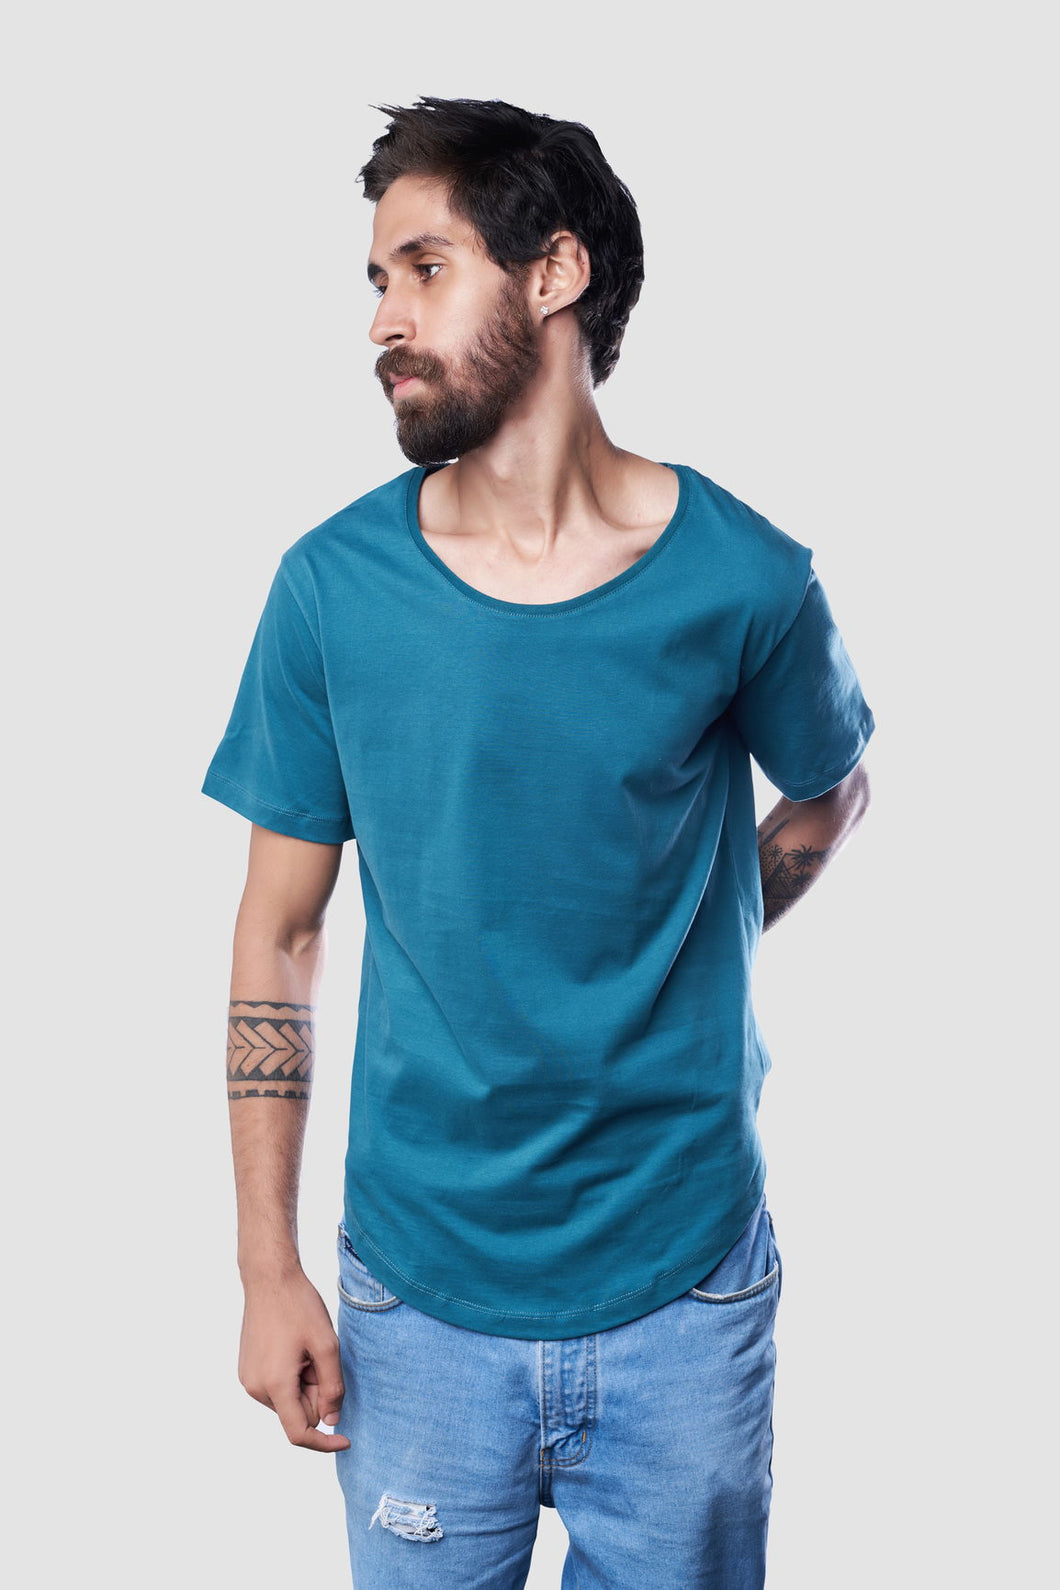 Sacer Simplicitas,T-Shirt for Men, 100% Organic Egyptian Cotton, Teal Green